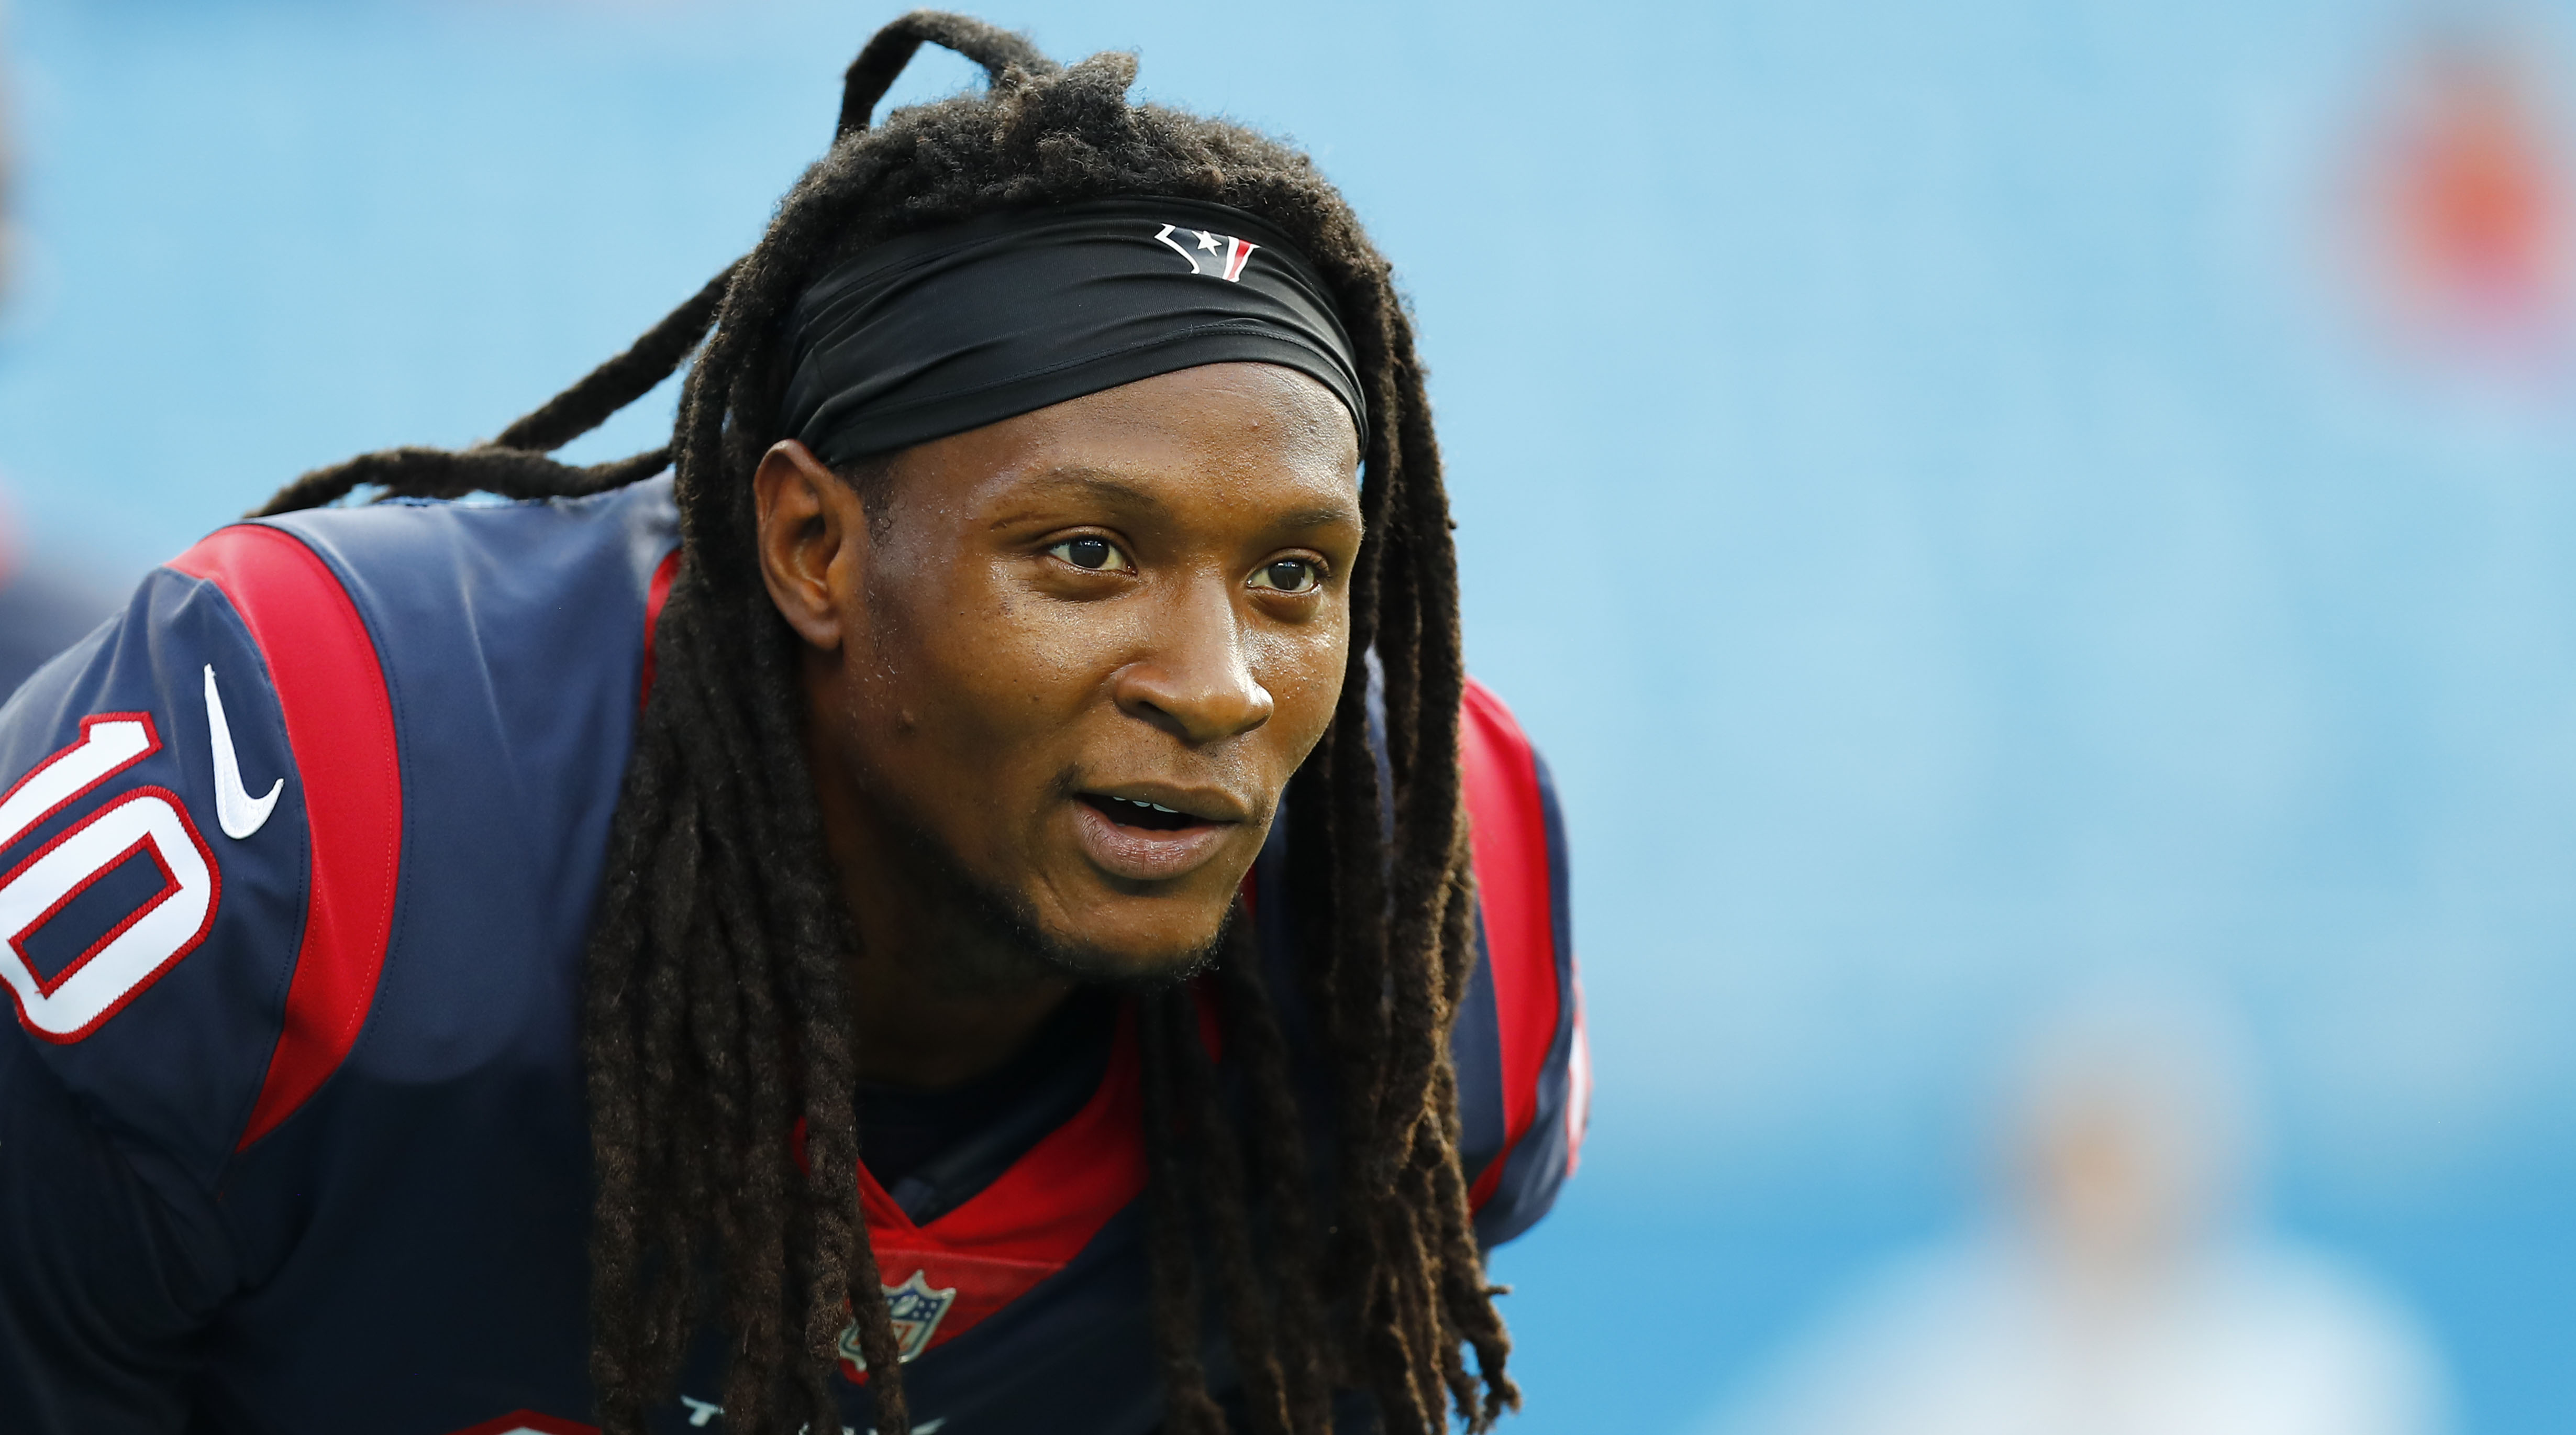 Texans reportedly signing DeAndre Hopkins to 5 year extension